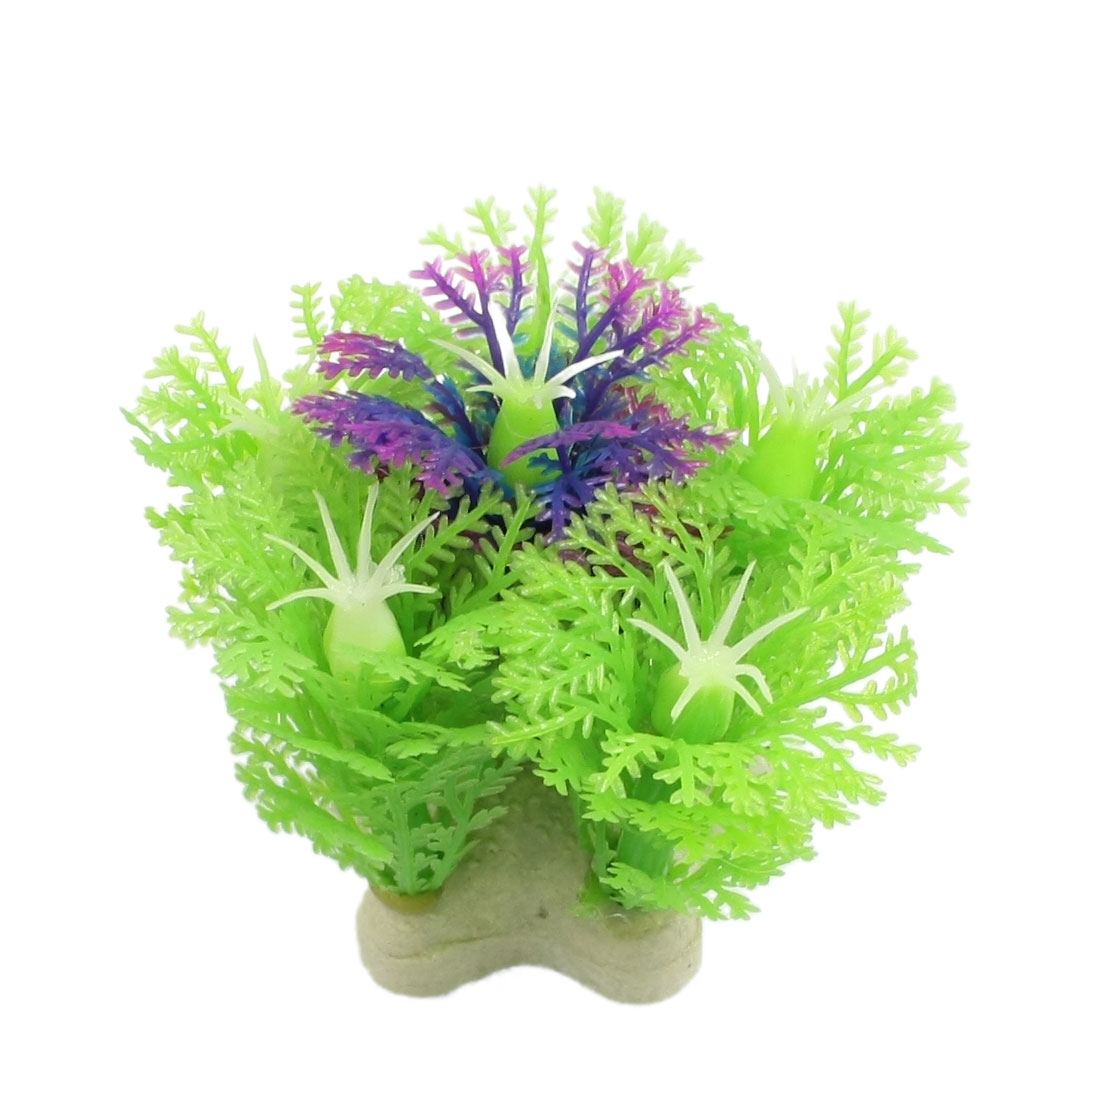 Green Plastic Snowflake Shape Fish Tank Ornament Grass 2.1""